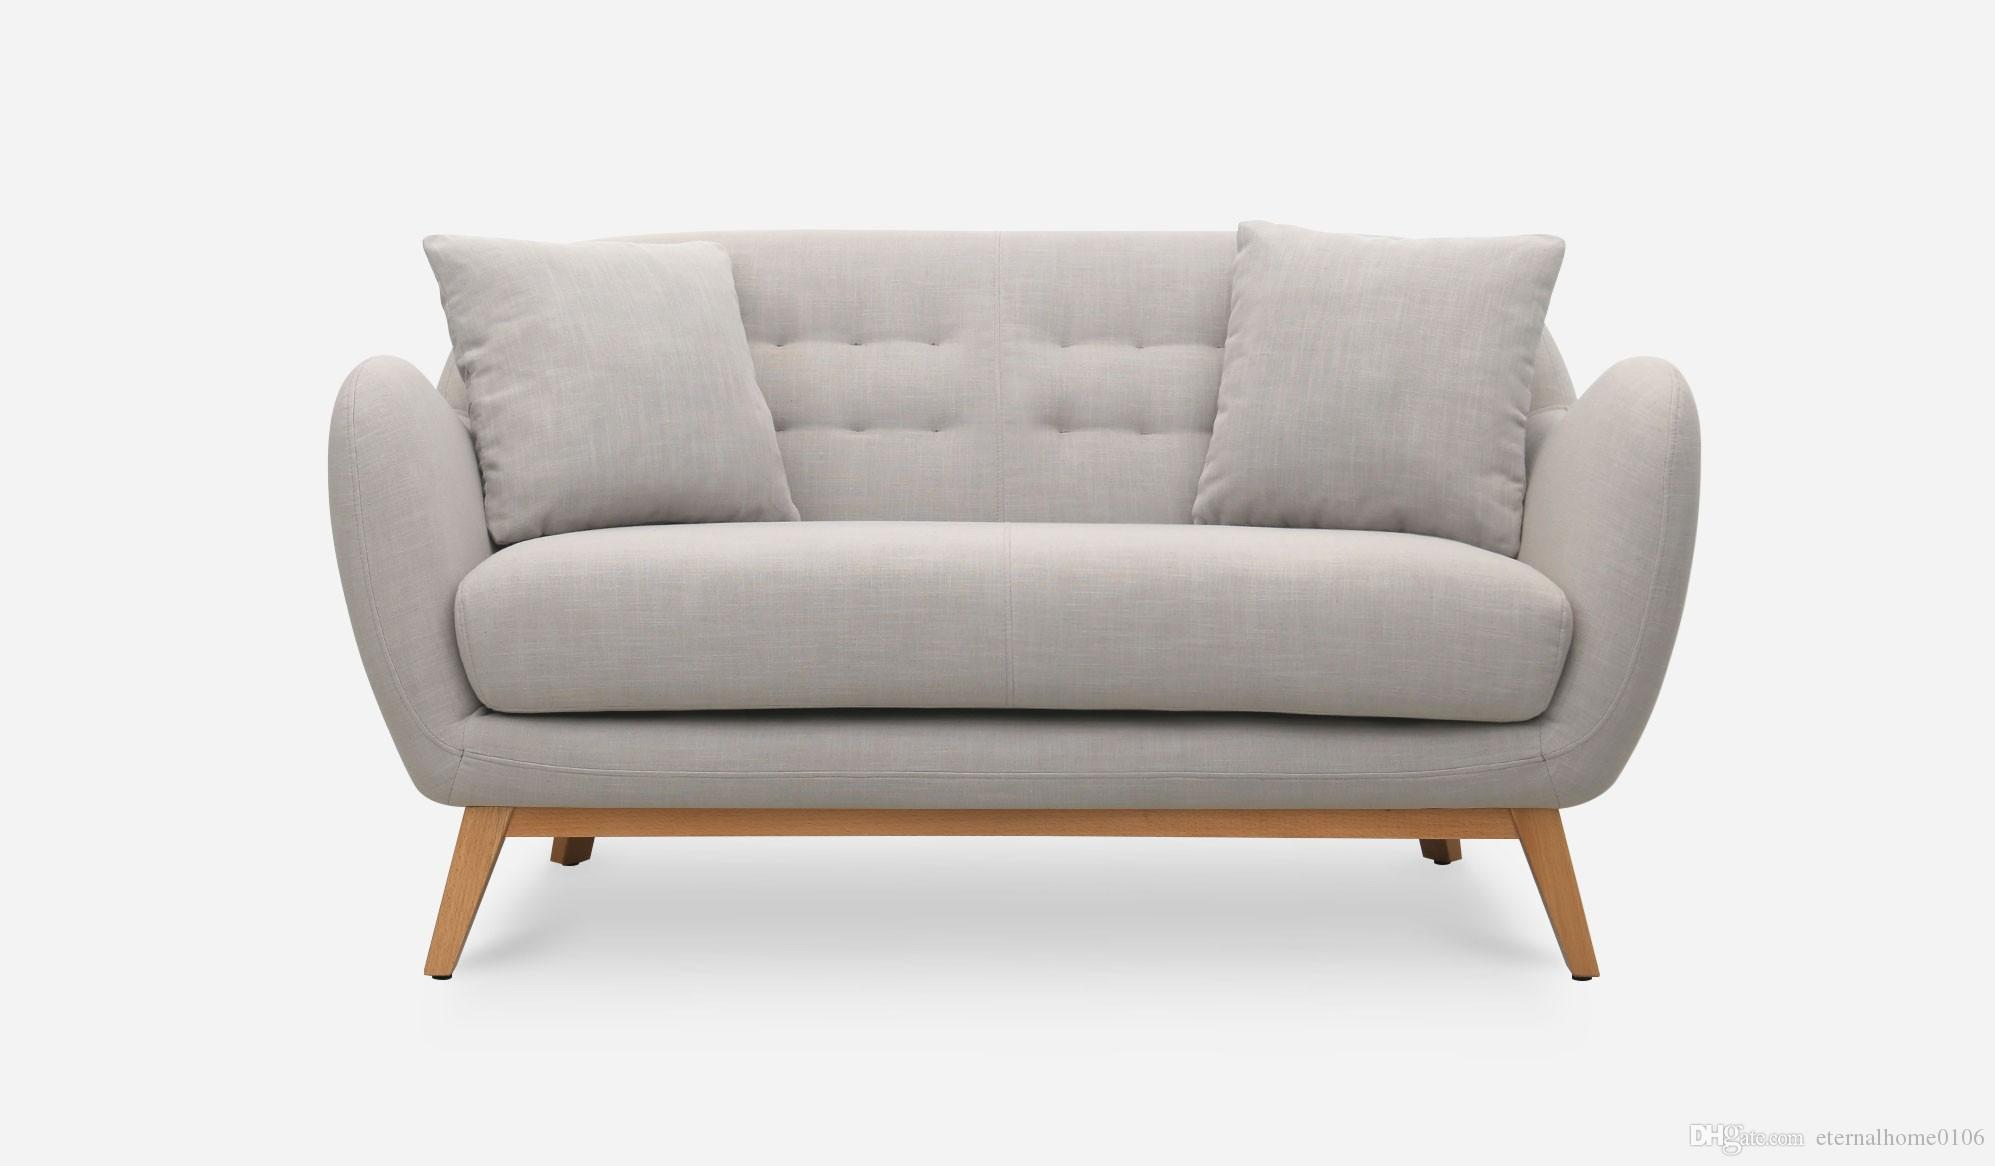 2018 Mid Century Modern Loveseats Furniture Ottoman Living Room Bedroom Sofa  Armchair Fabric Velvet 031 From Eternalhome0106, $903.52 | Dhgate.Com